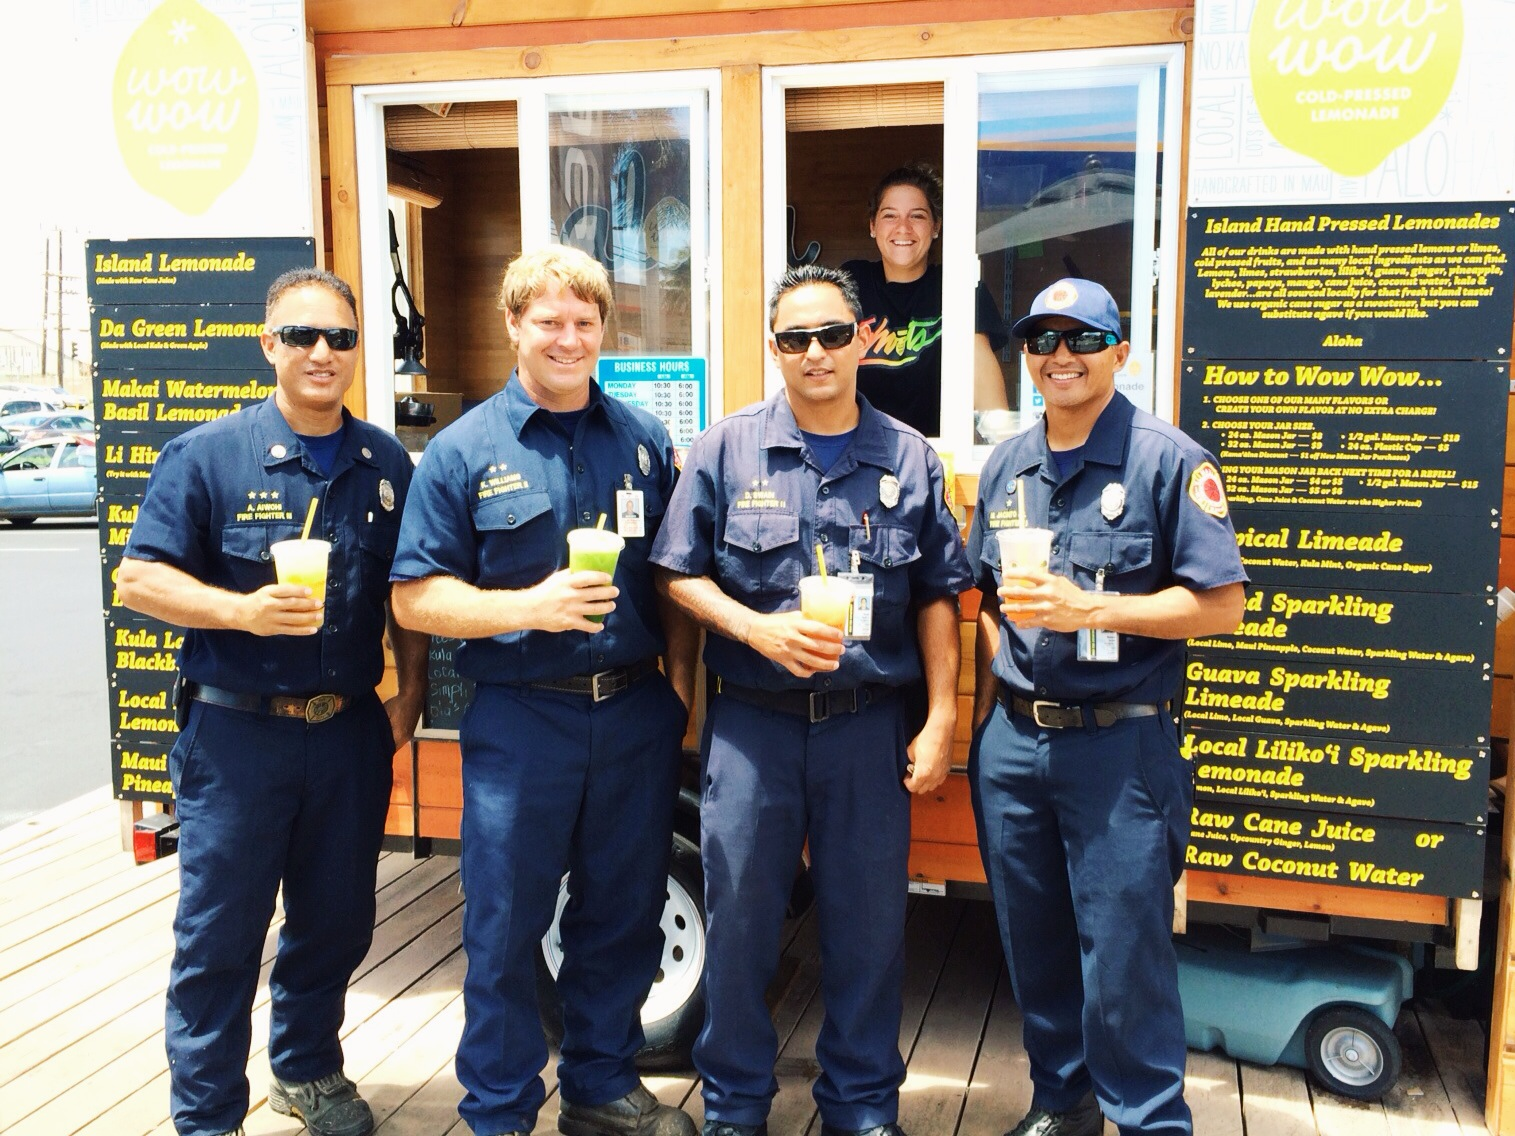 Local fire fighters cooling off with a few refreshing lemonades at our stand in Kahului.